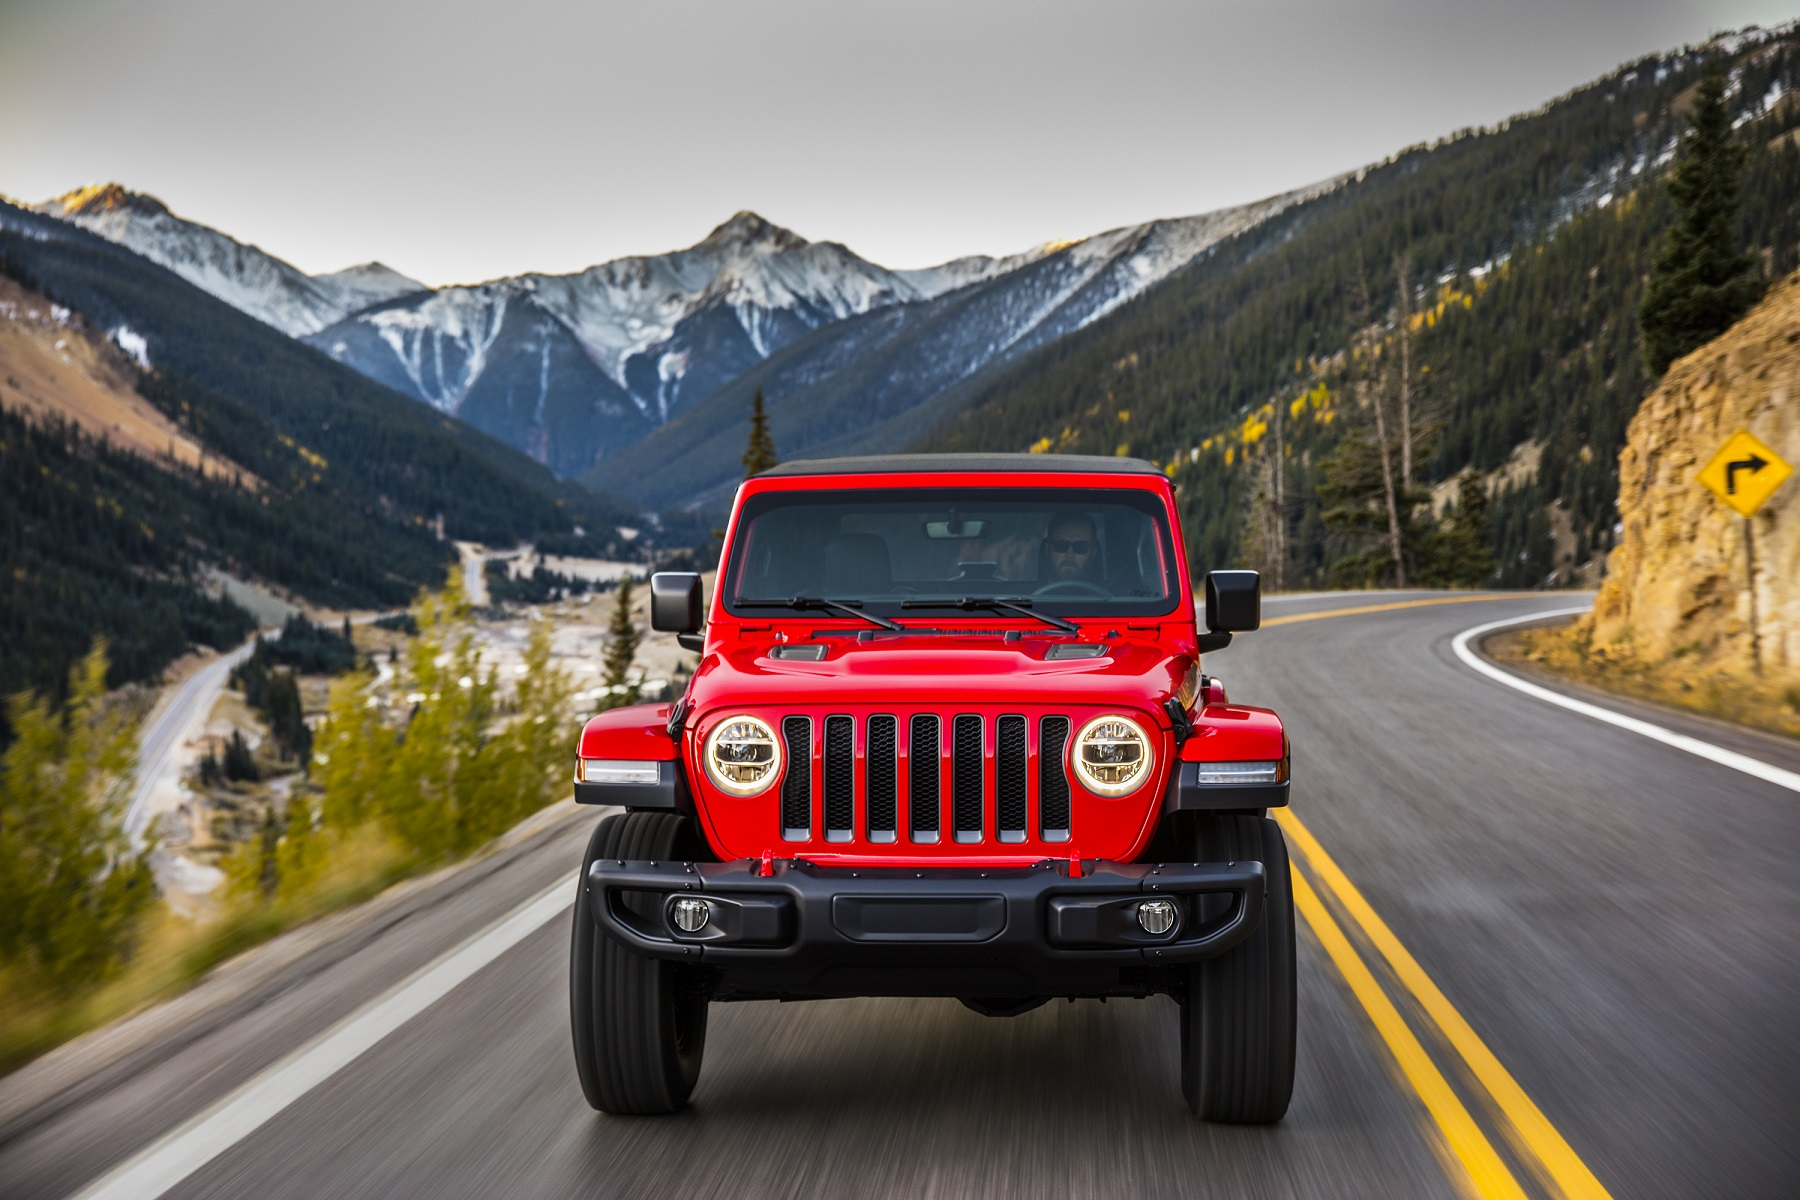 Manufacturer photo: The 2018 Jeep Wrangler delivers unmatched off-road capability with legendary four-wheel drive and is produced with more than seven decades of 4x4 engineering experience